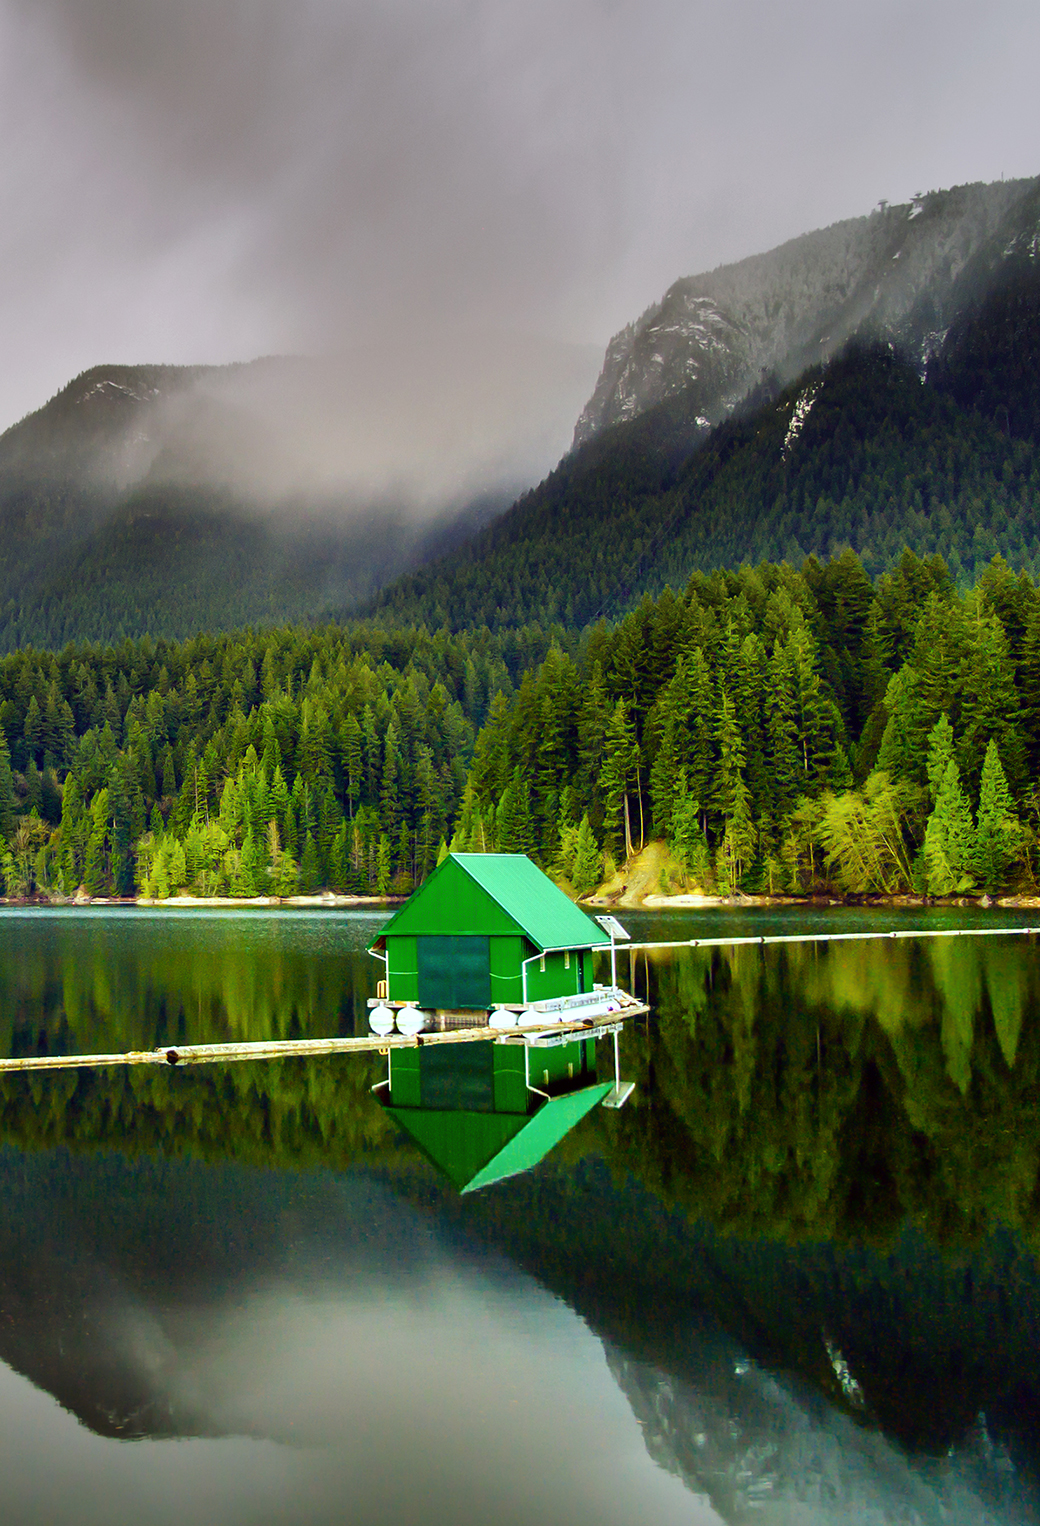 Floating Cabin 3Wallpaper siPhone Parallax Floating Cabin